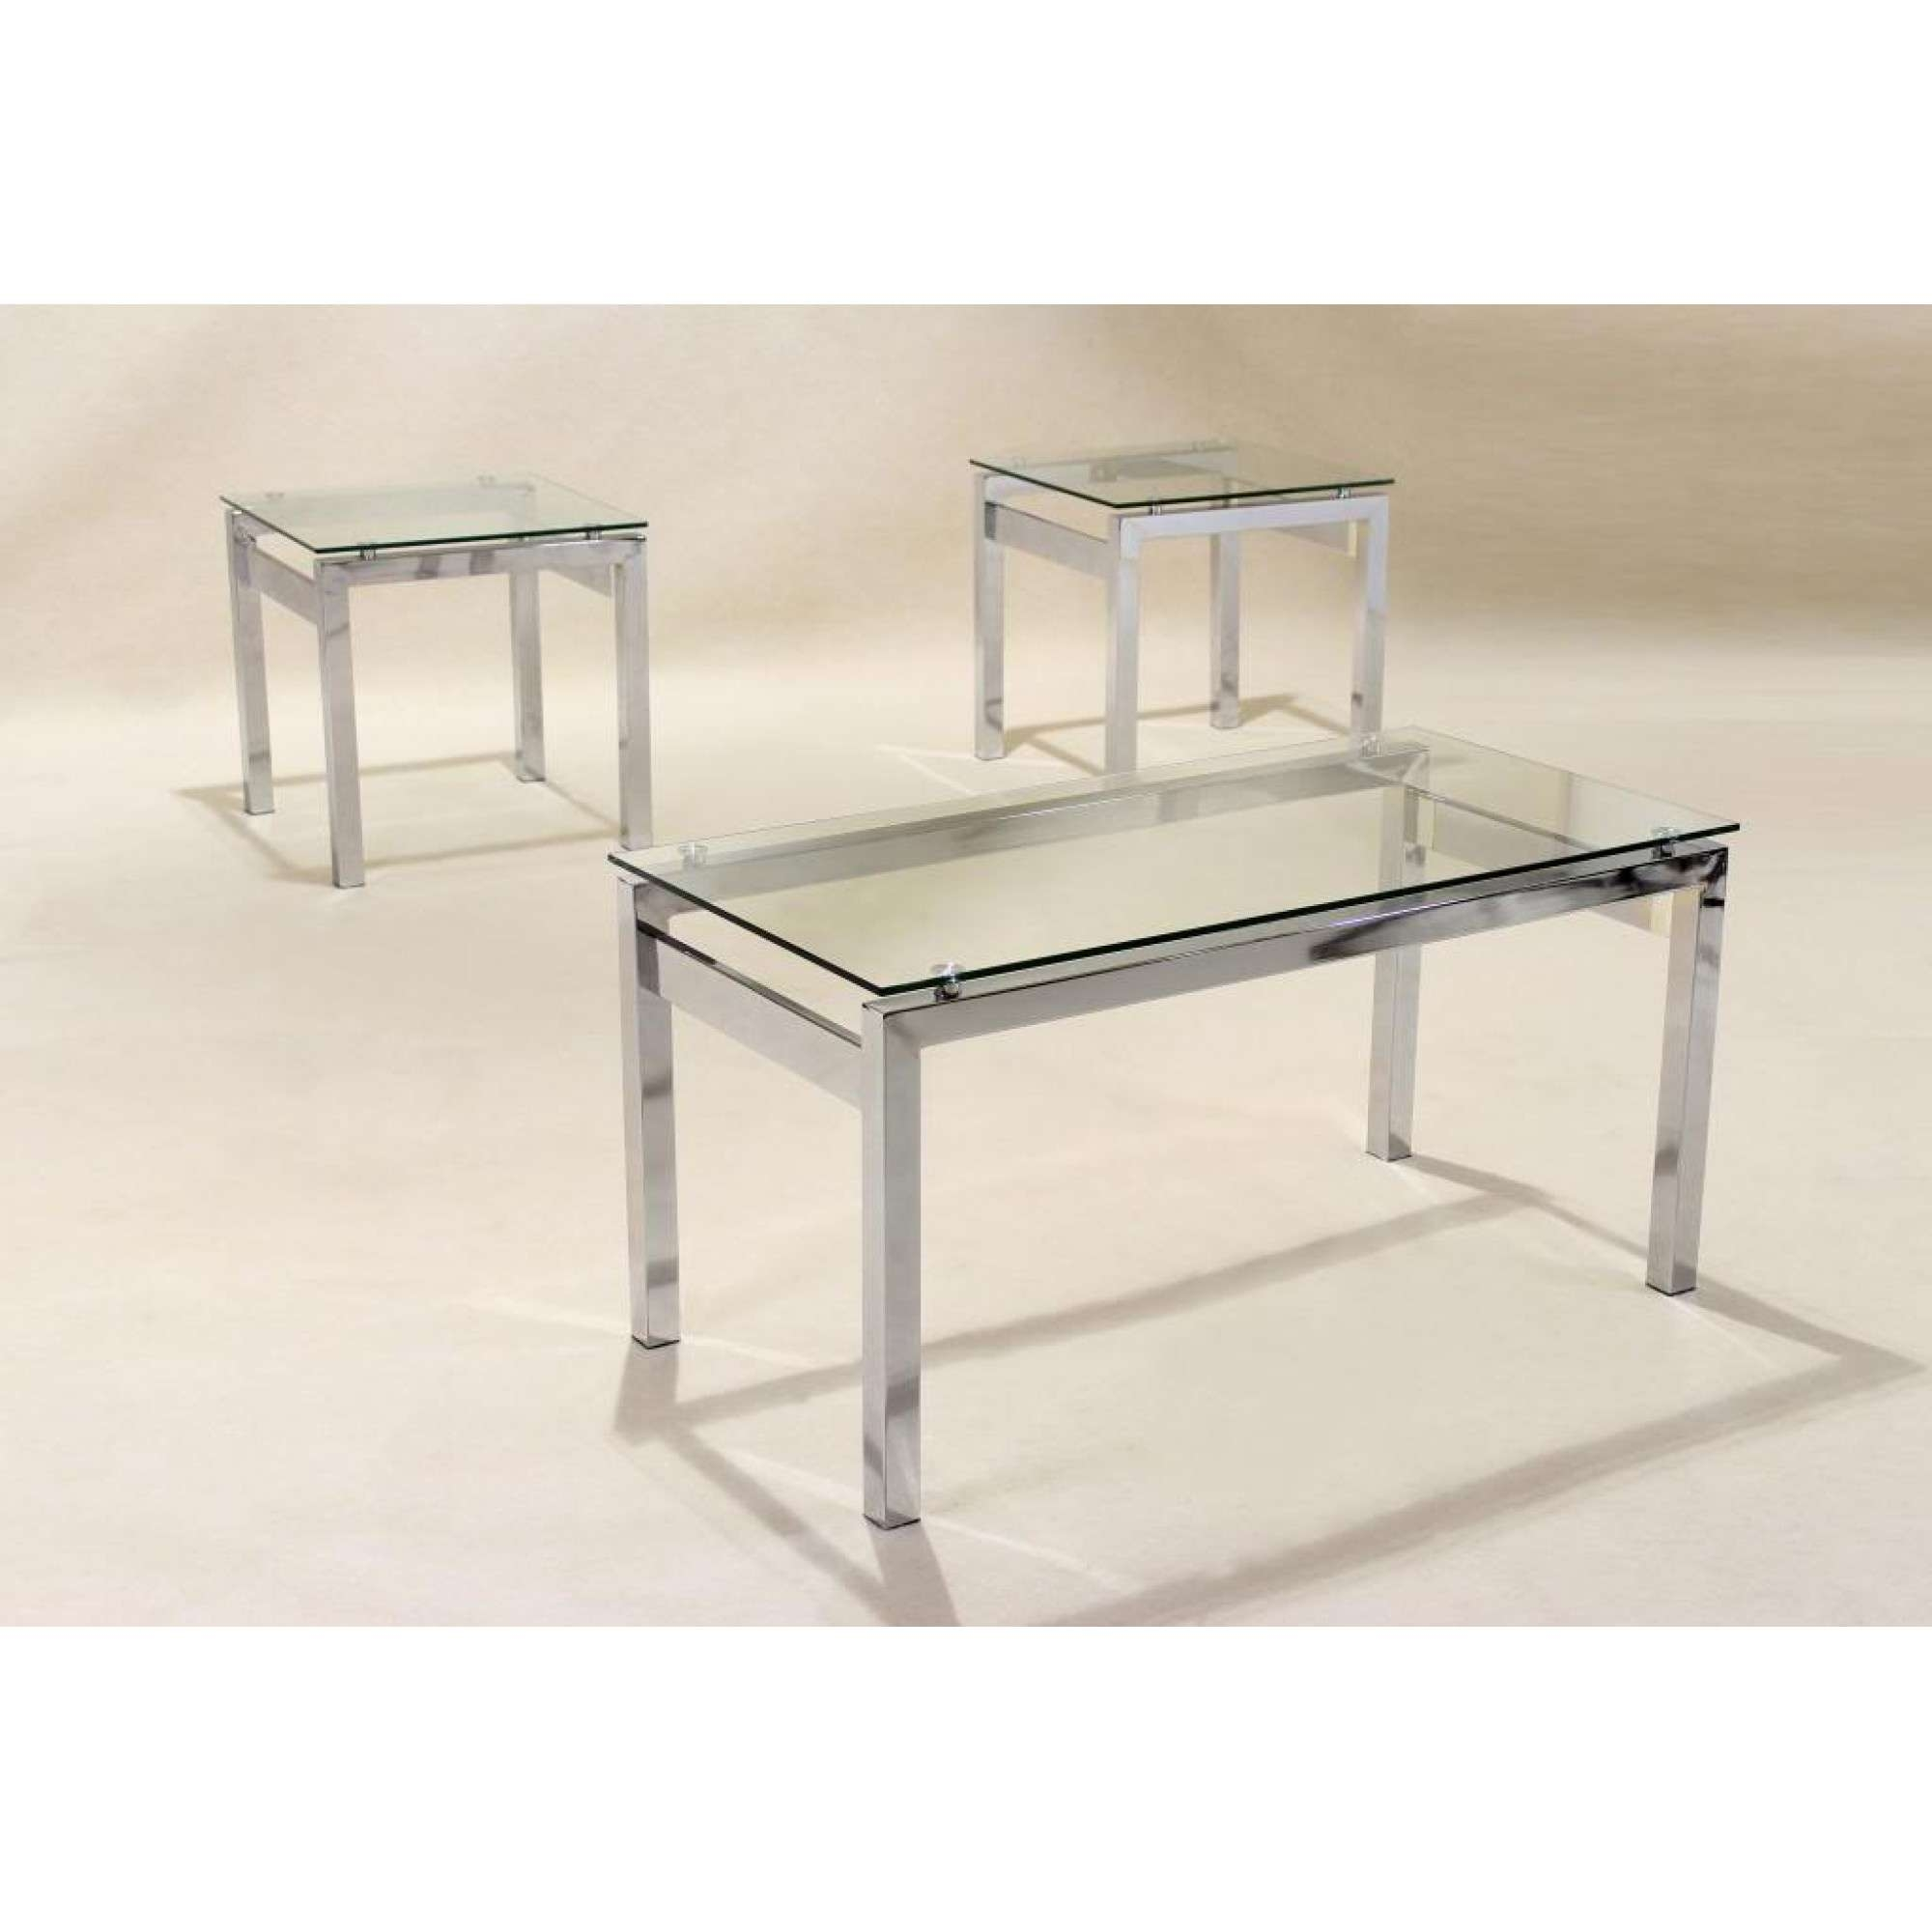 Coffee Table : Magnificent Wrought Iron Coffee Table Glass Coffee Within Popular White And Chrome Coffee Tables (View 9 of 20)